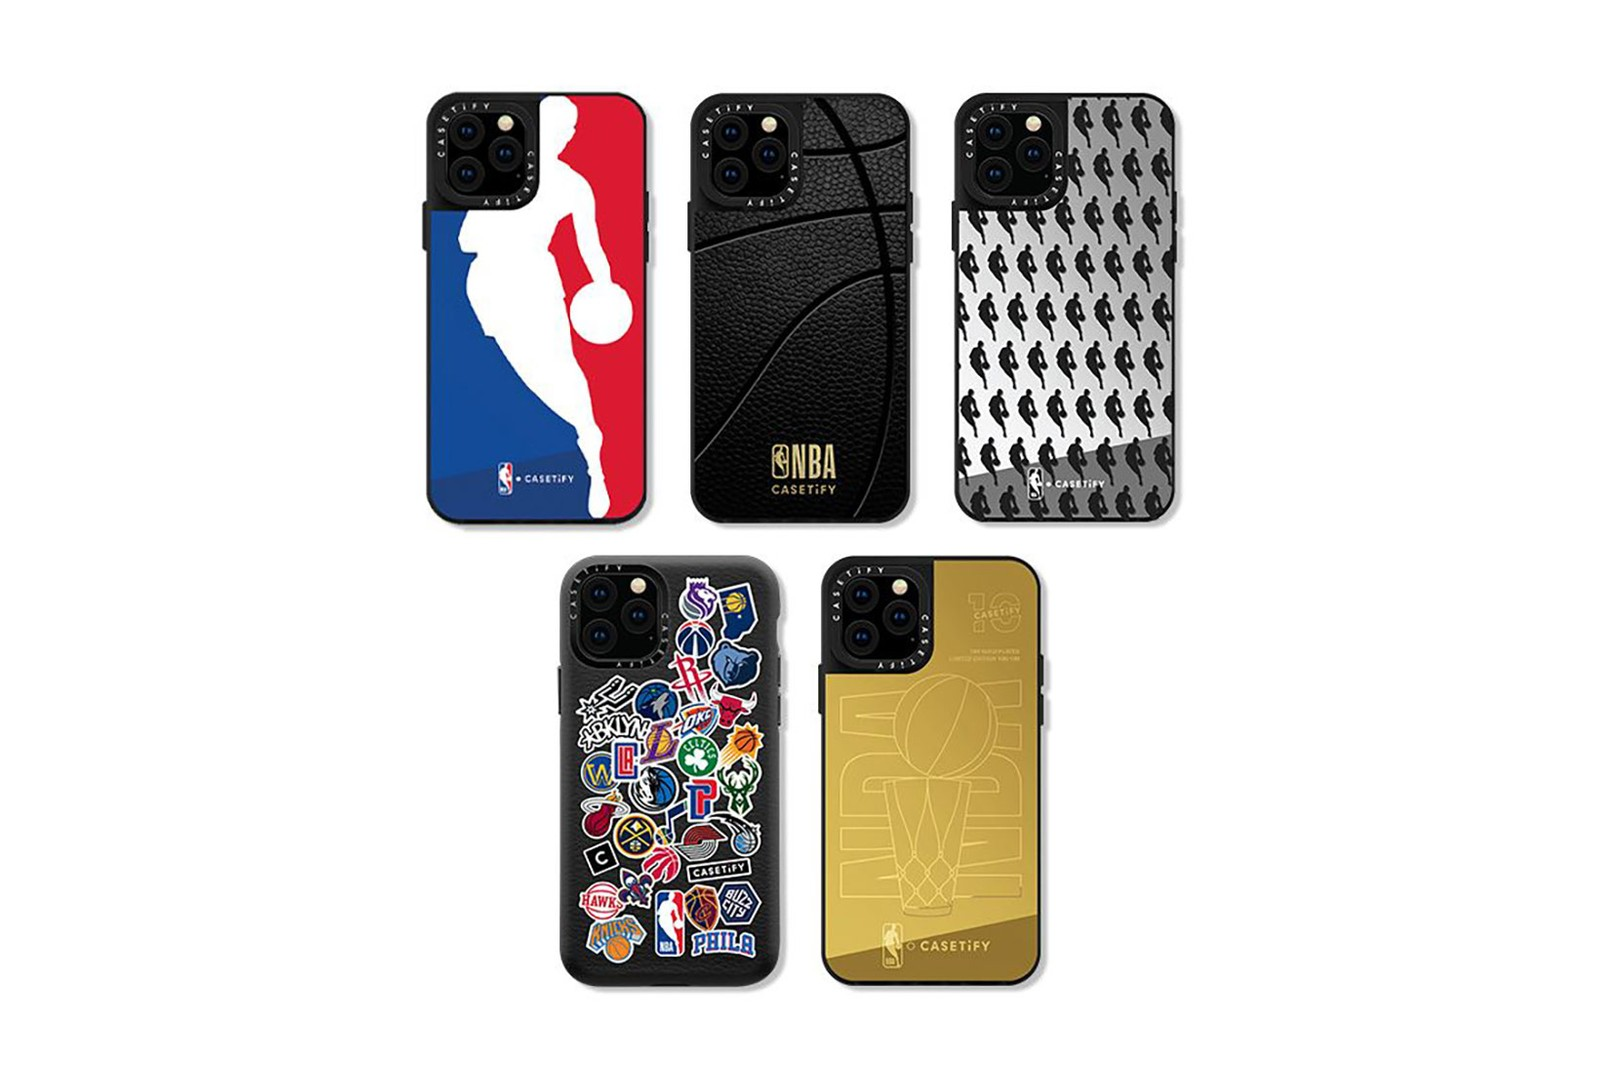 casetify nba national basketball association collaboration cases apple iphone black gold